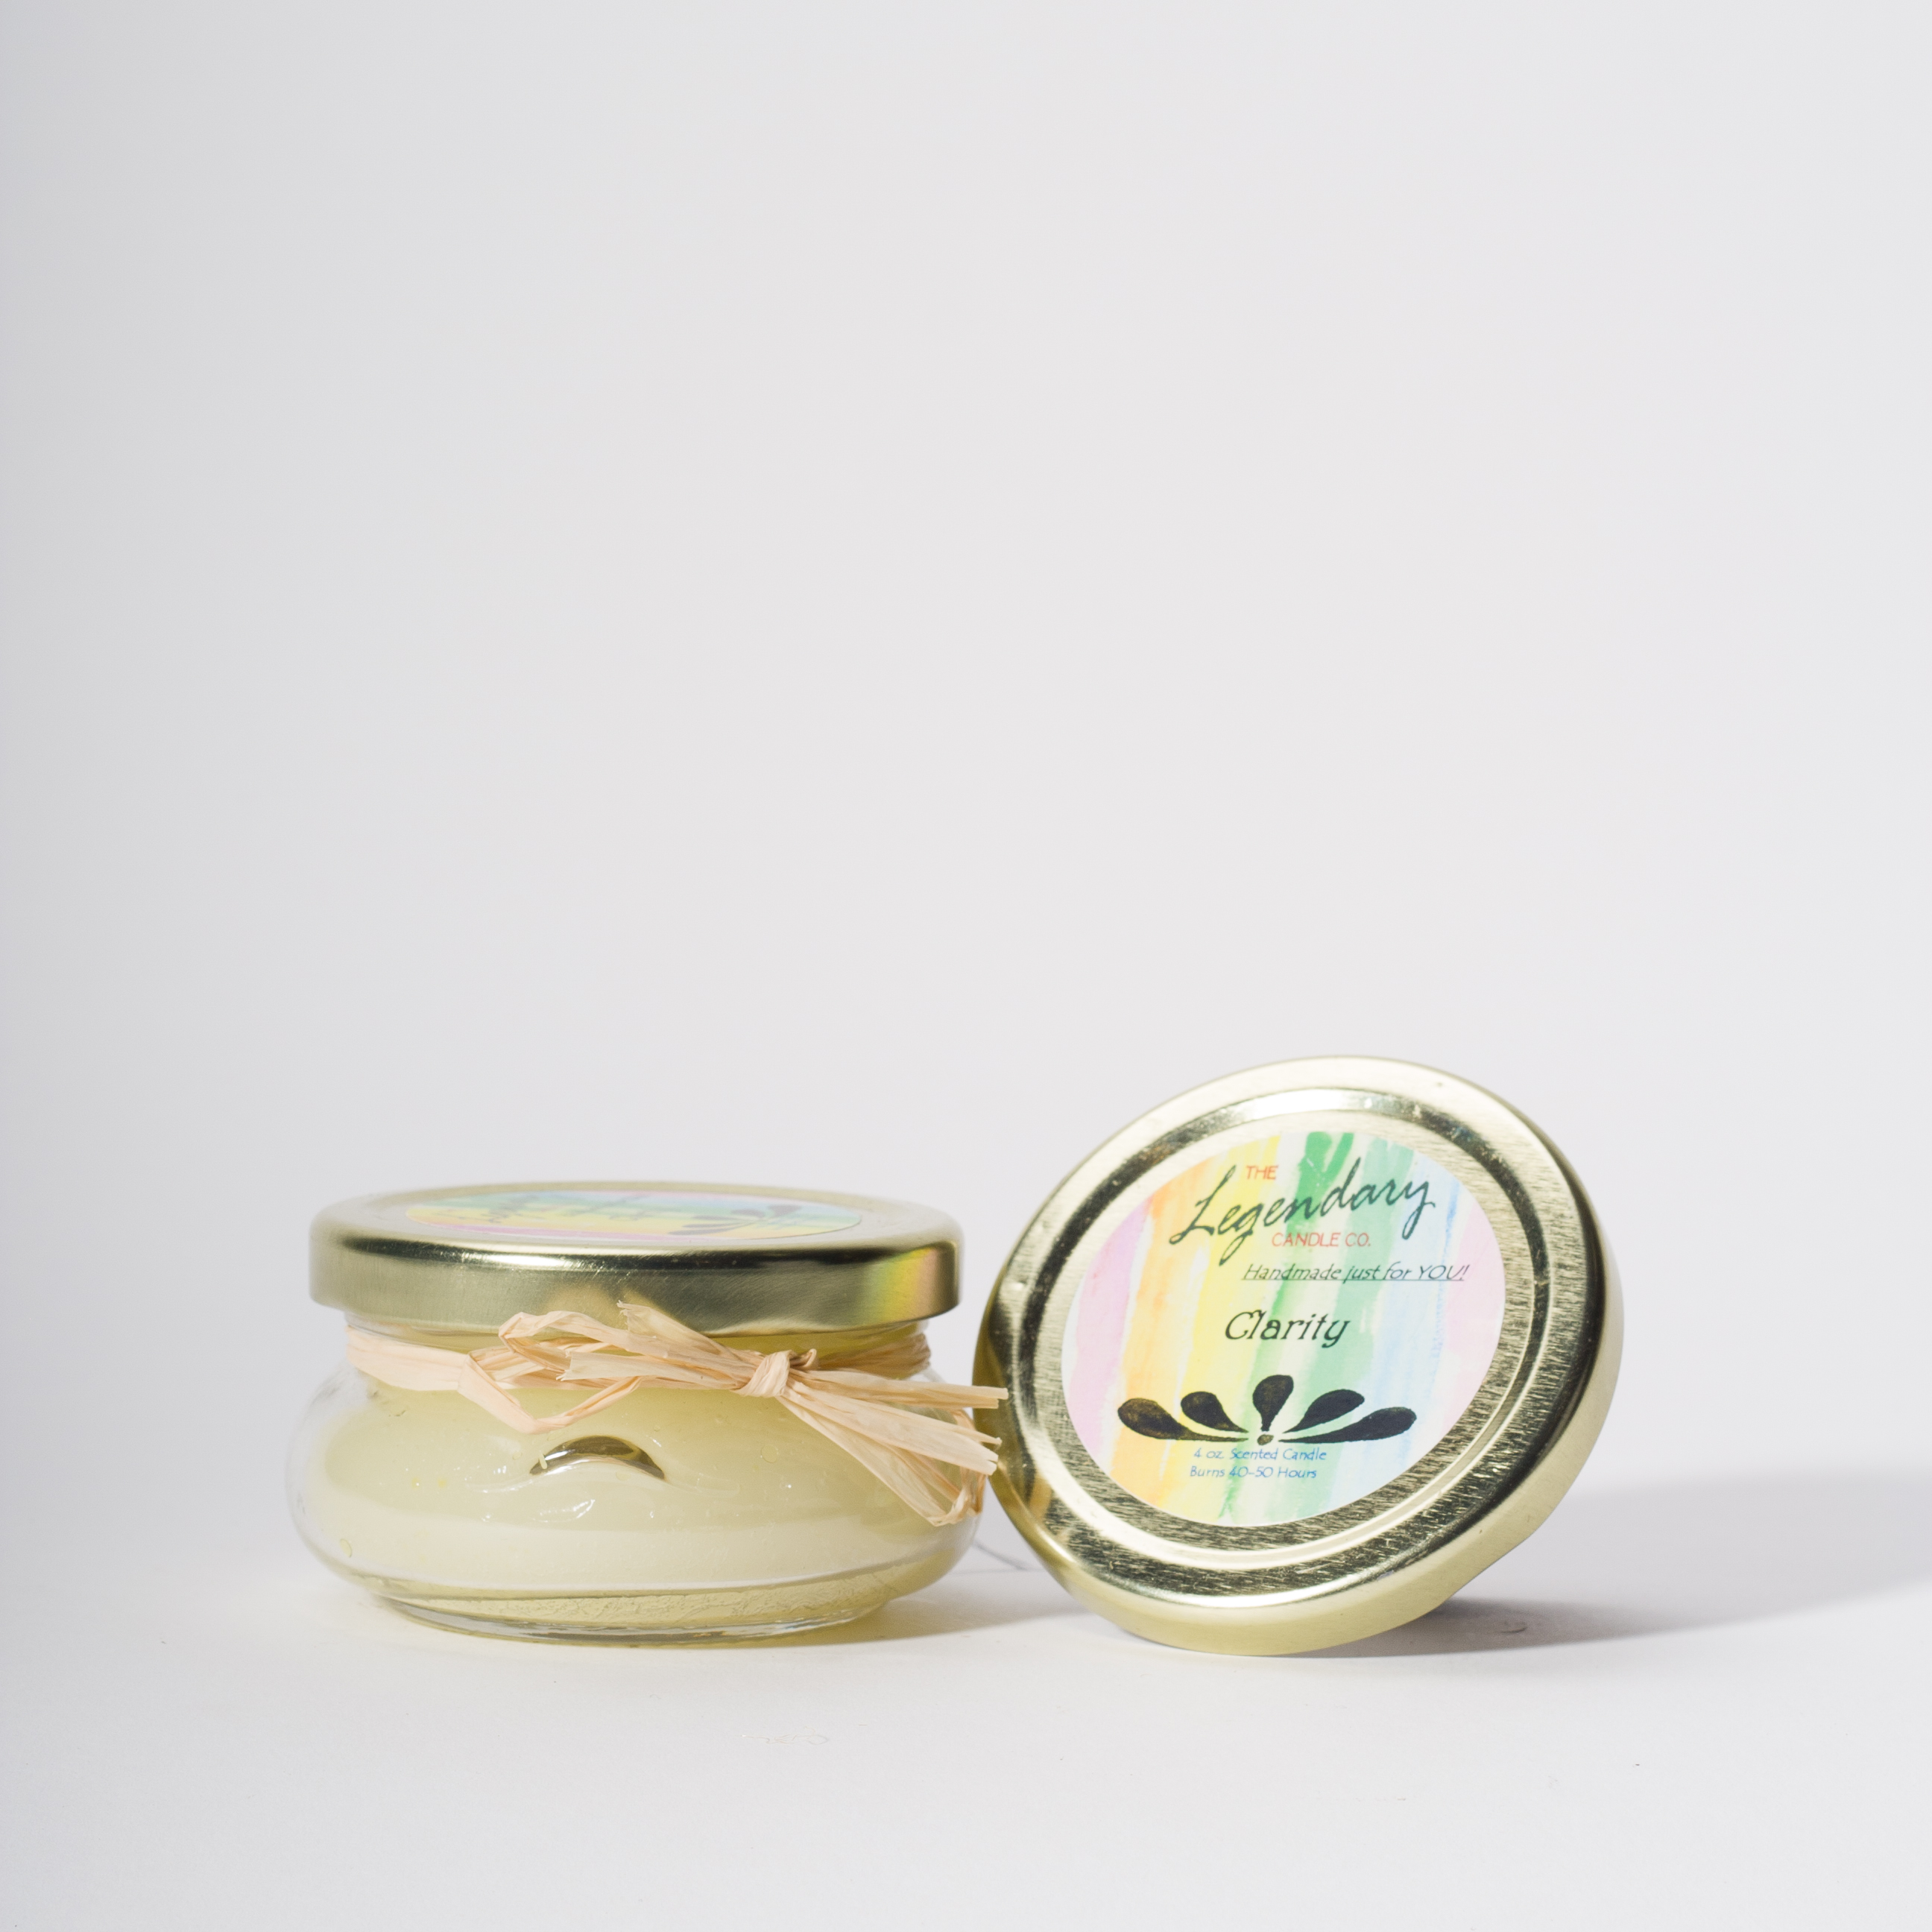 4 Ounce Clarity Scented Tureen Jar Candle